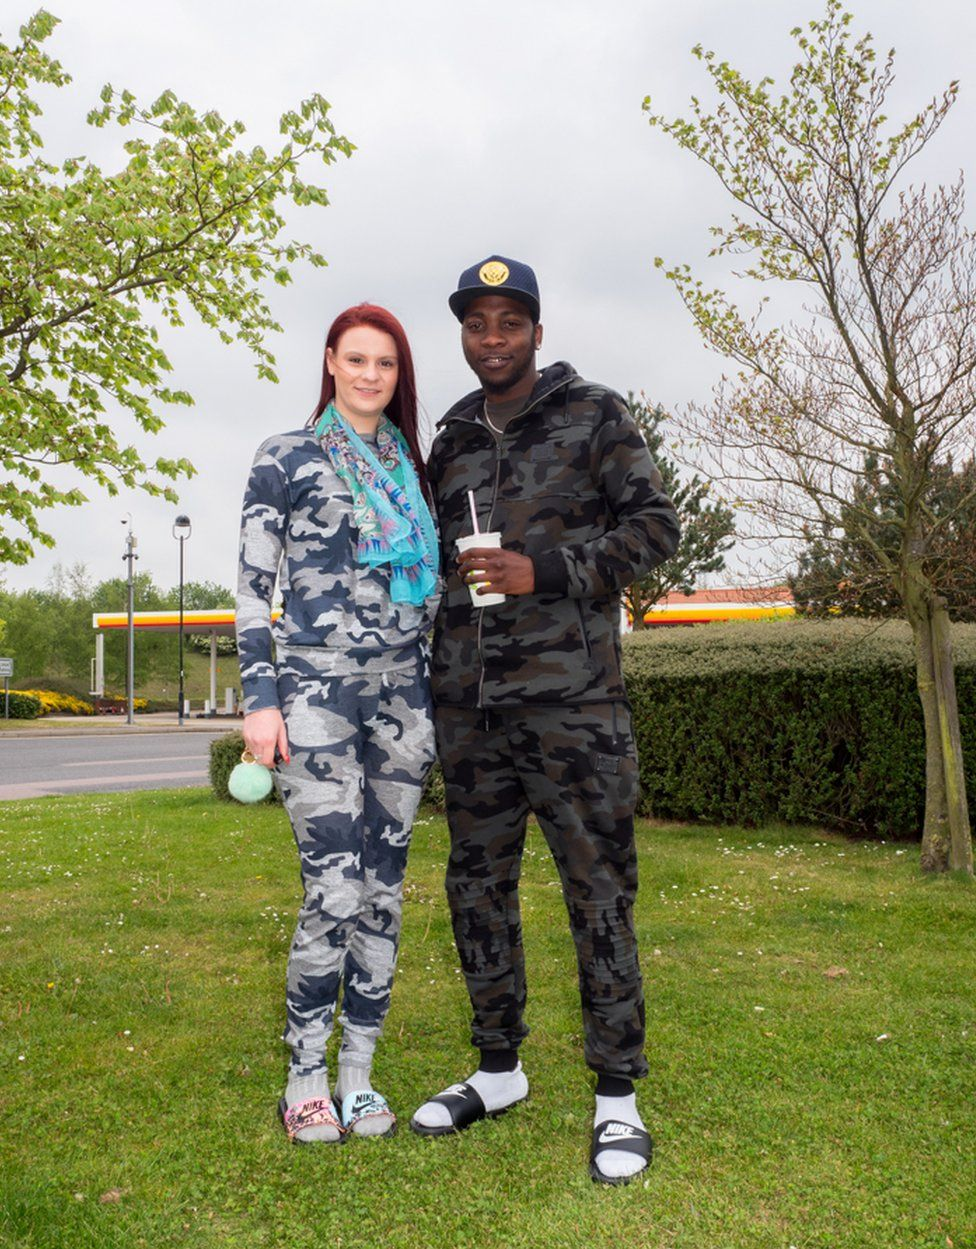 Challis Cooper (20) and Arnold (22) take a break at Baldock Extra Motorway Services, on their way to visit family in Great Yarmouth. Radwell, Baldock, Bedfordshire.